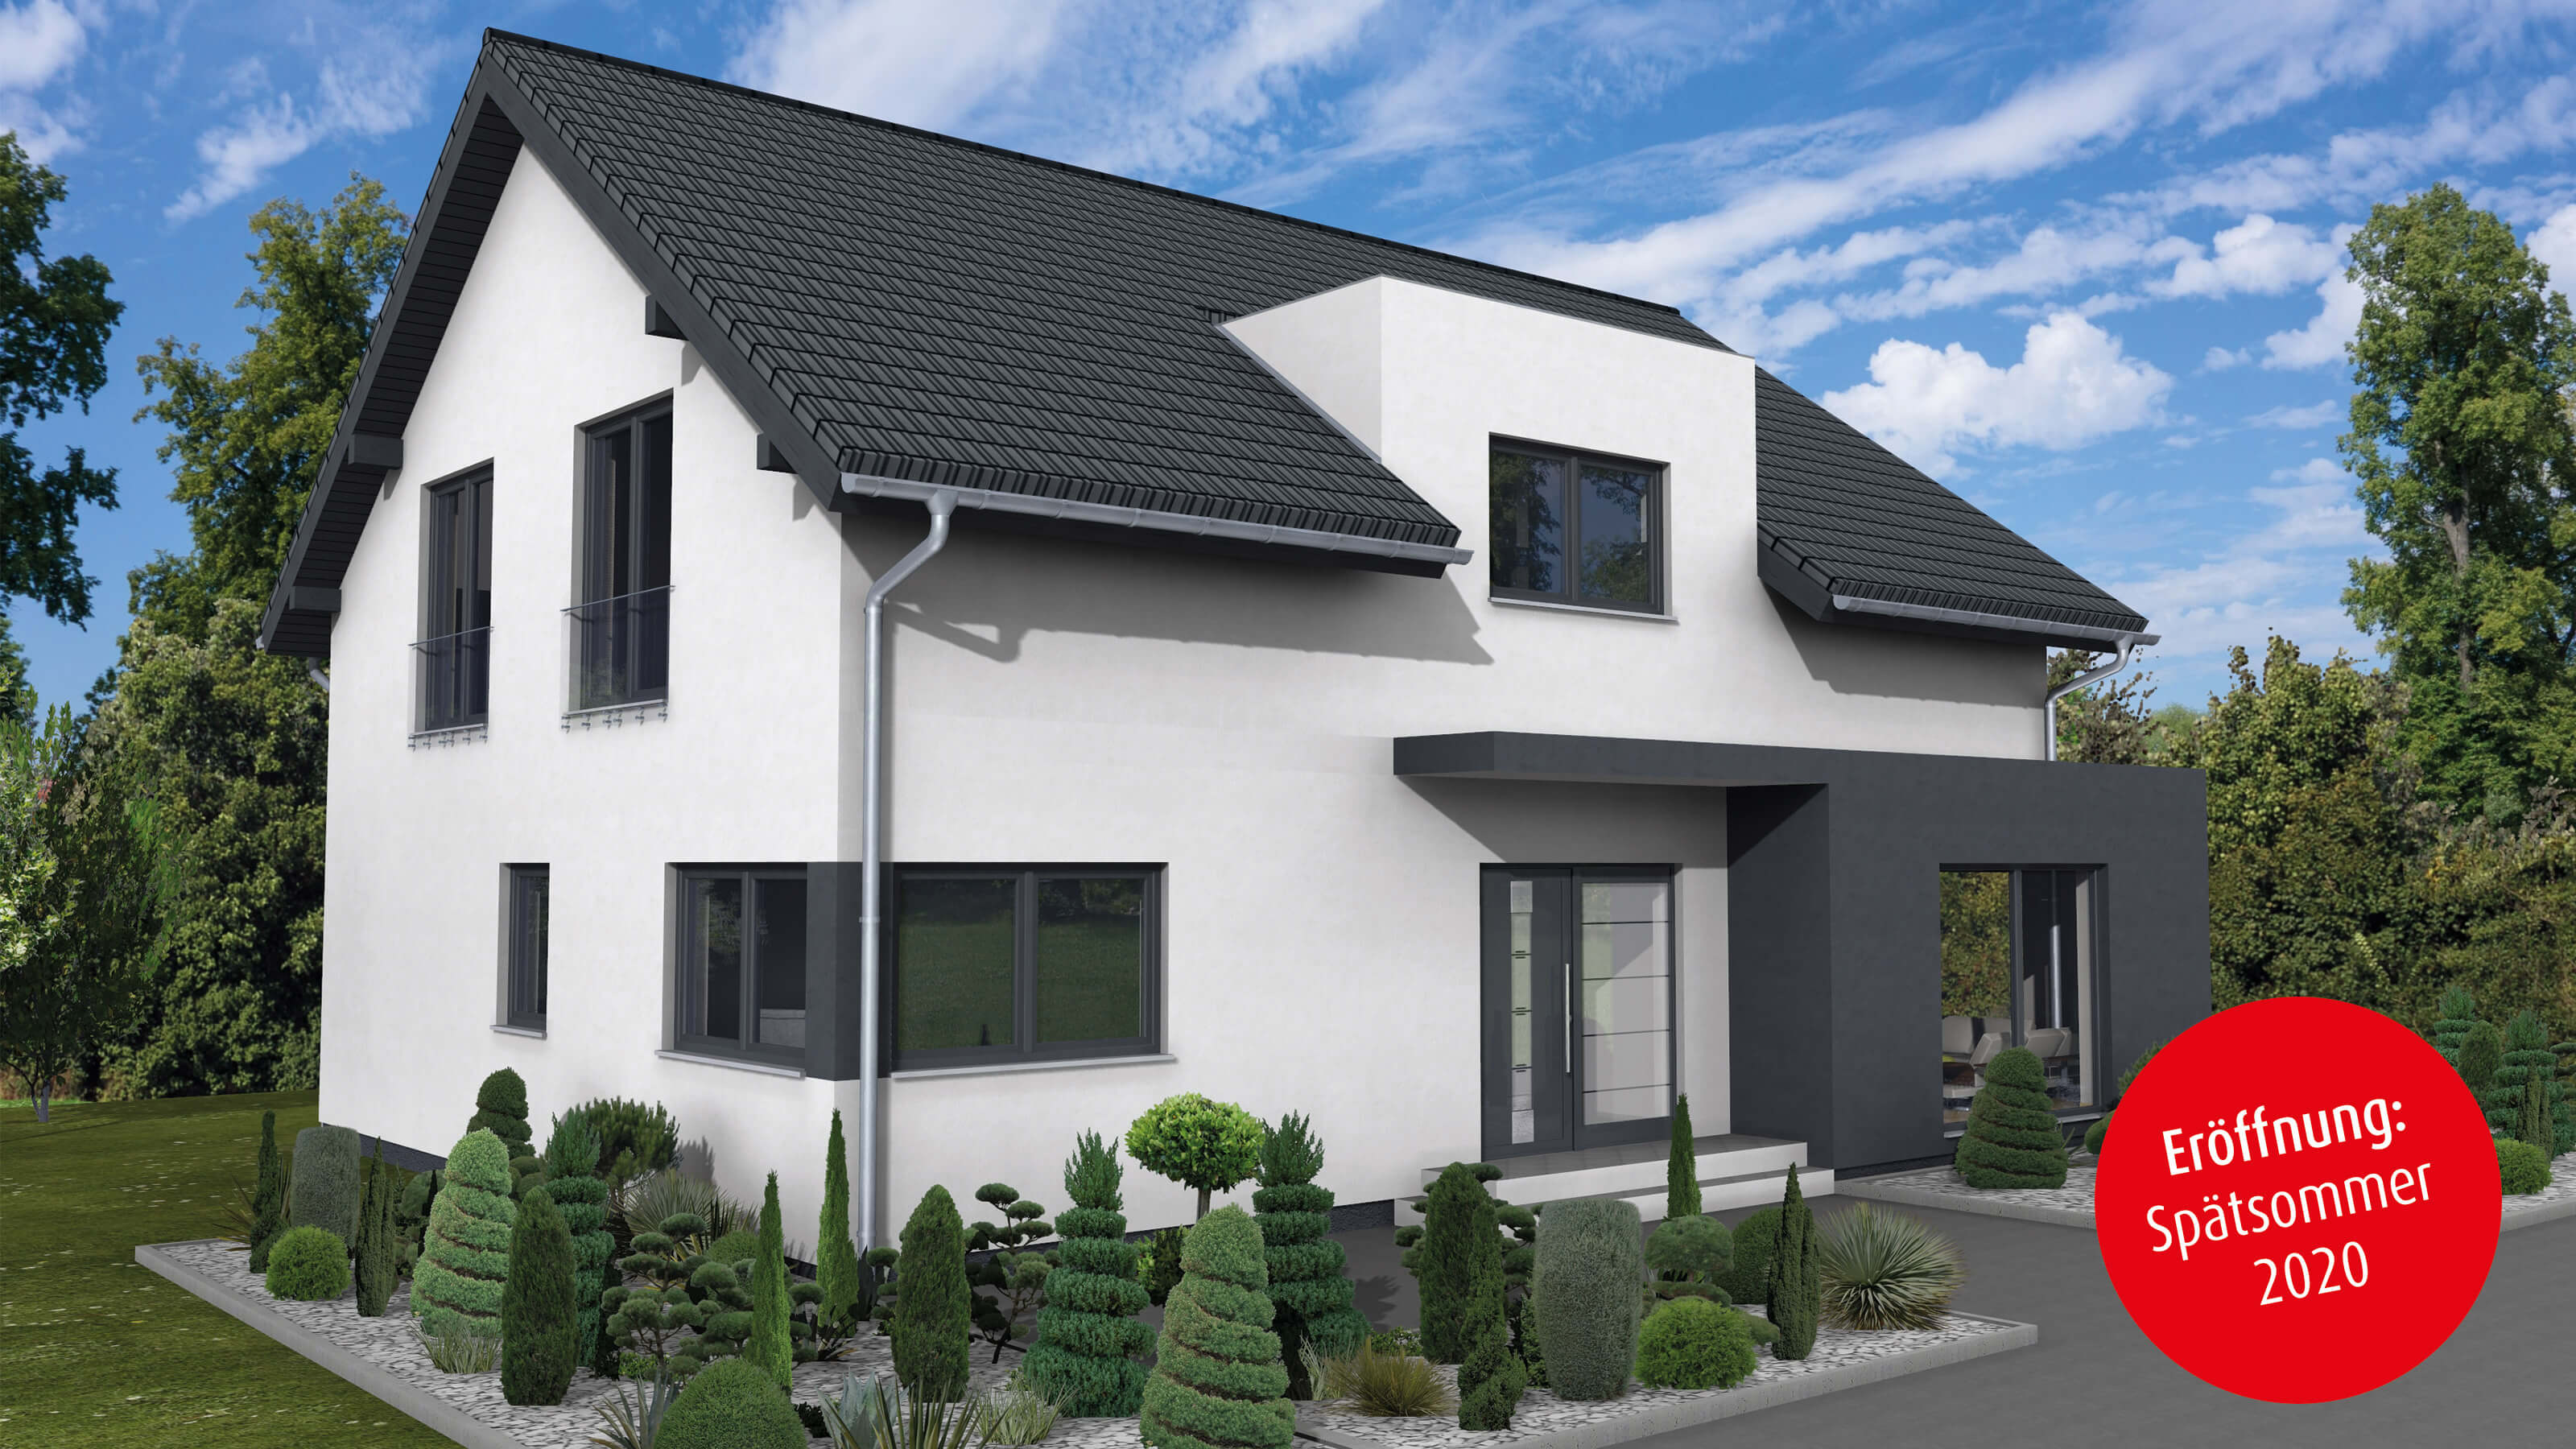 Haus 1 5 Geschossig Satteldach ᐅ Musterhaus Bad Vilbel | Fingerhut Haus Gmbh & Co. Kg